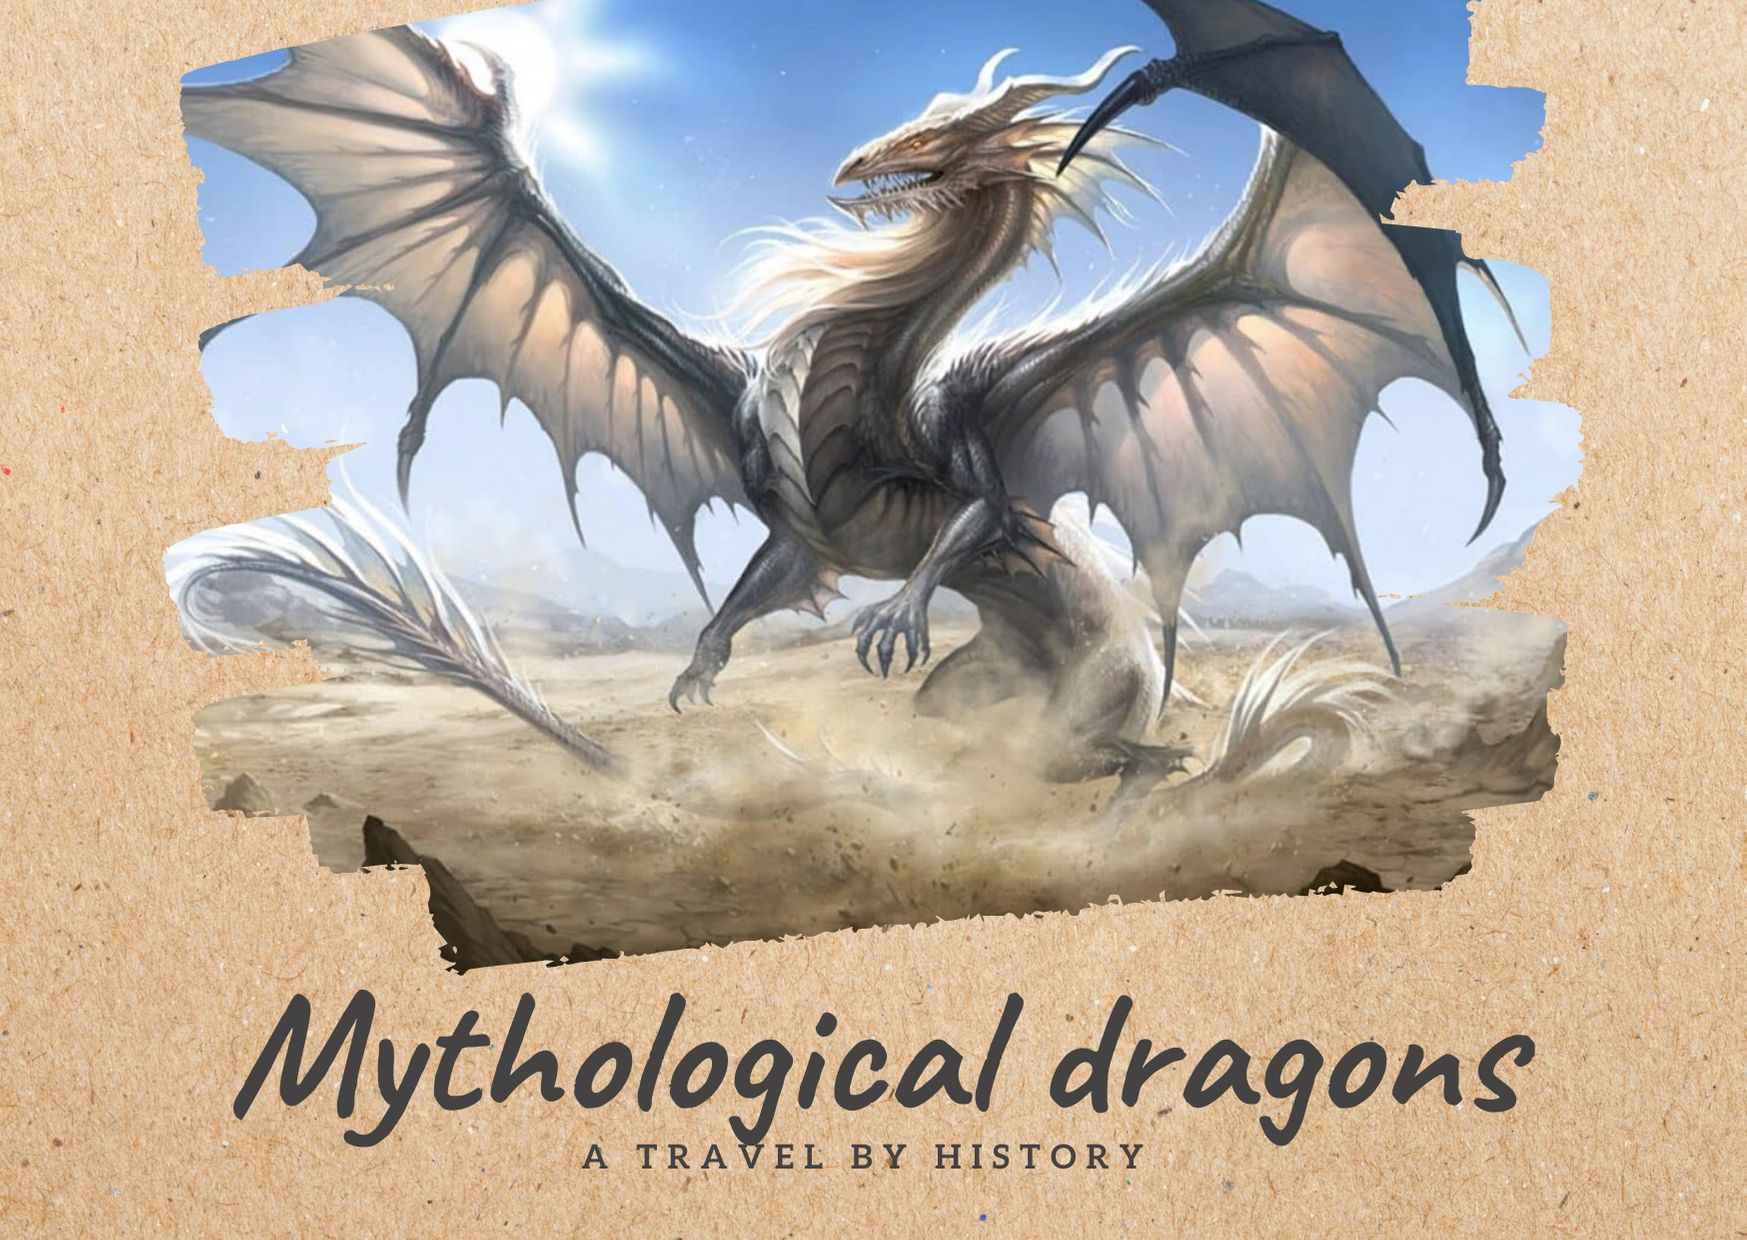 Mythological Dragons